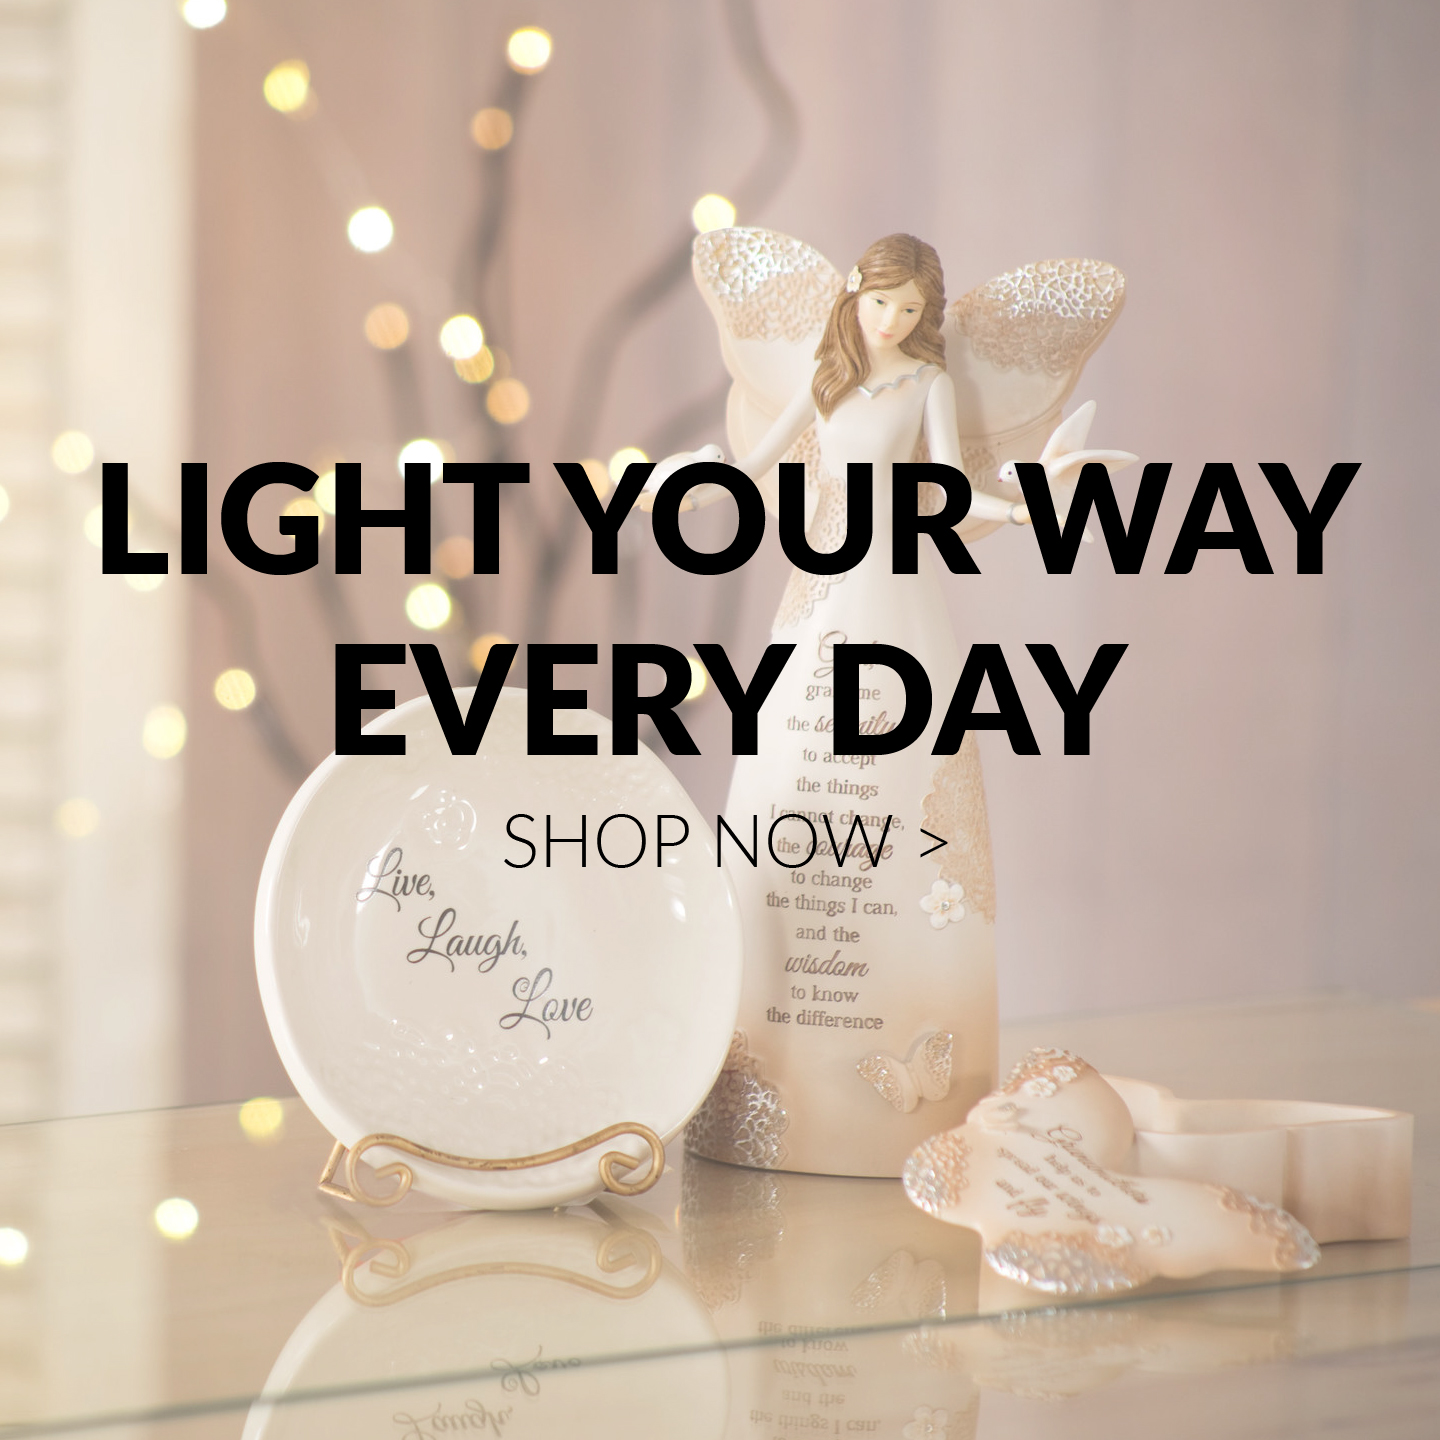 Light Your Way Every Day